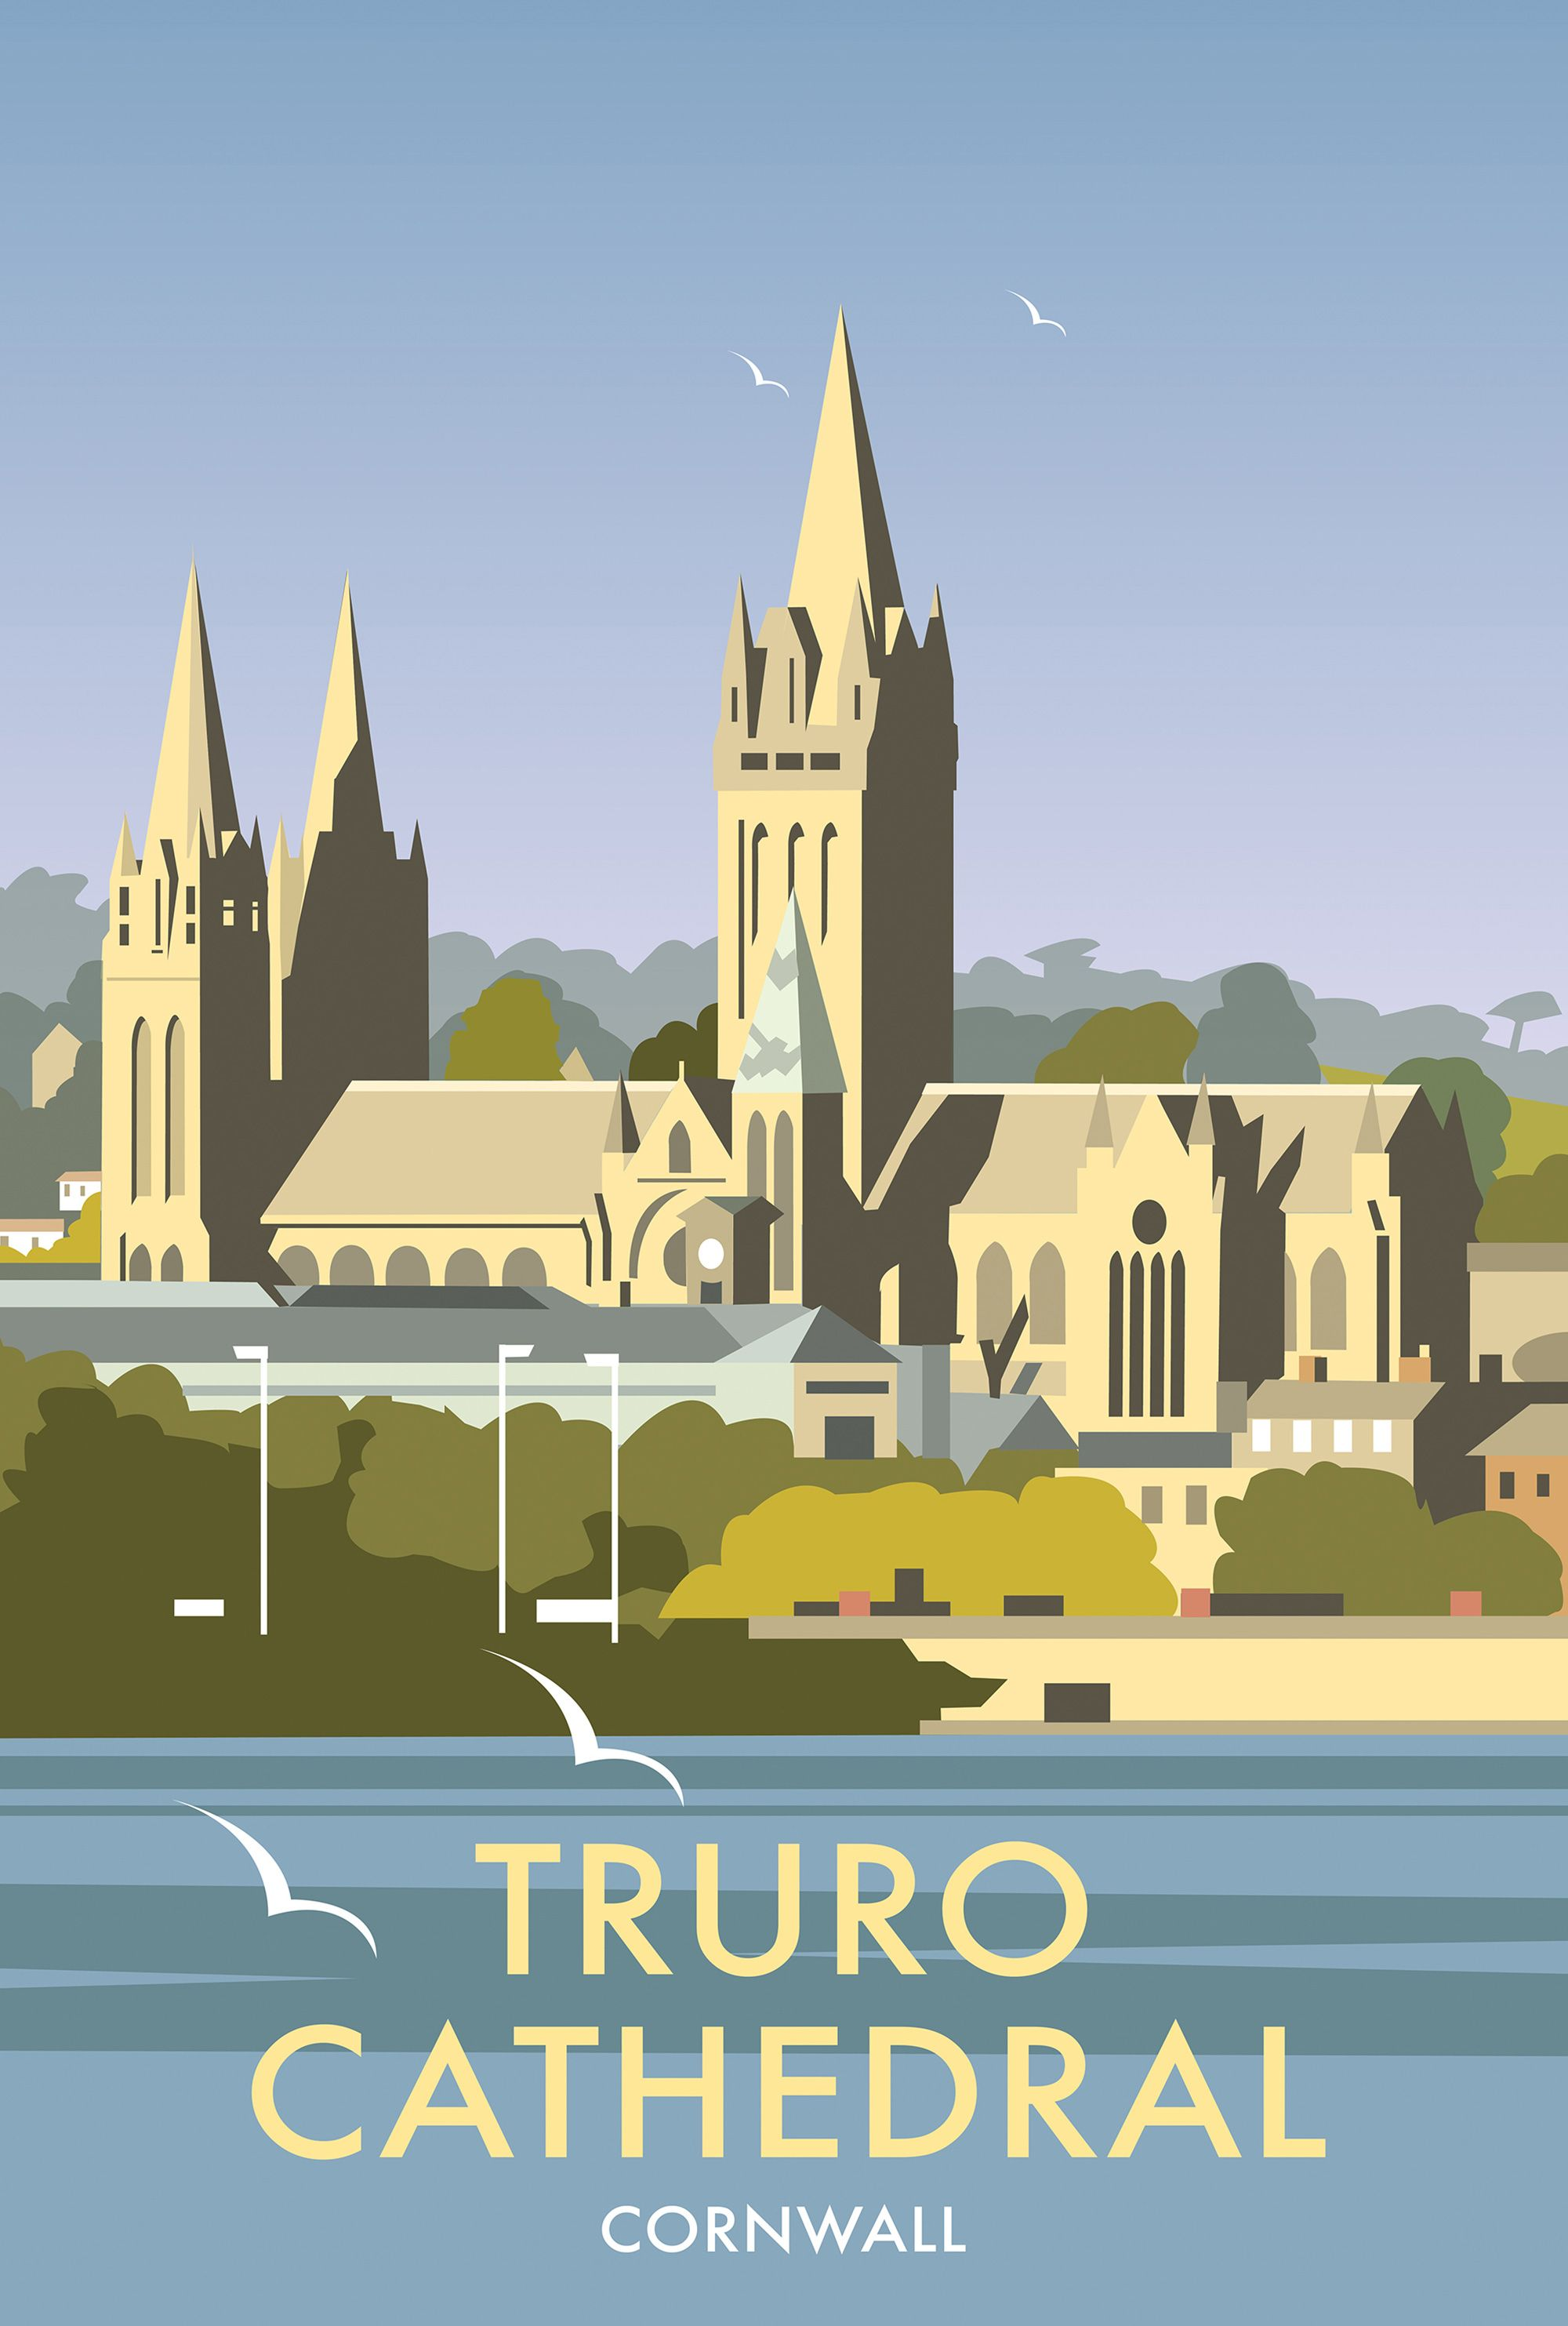 Truro Cathedral, Cornwall by Dave Thompson | Vintage Travel Posters ...